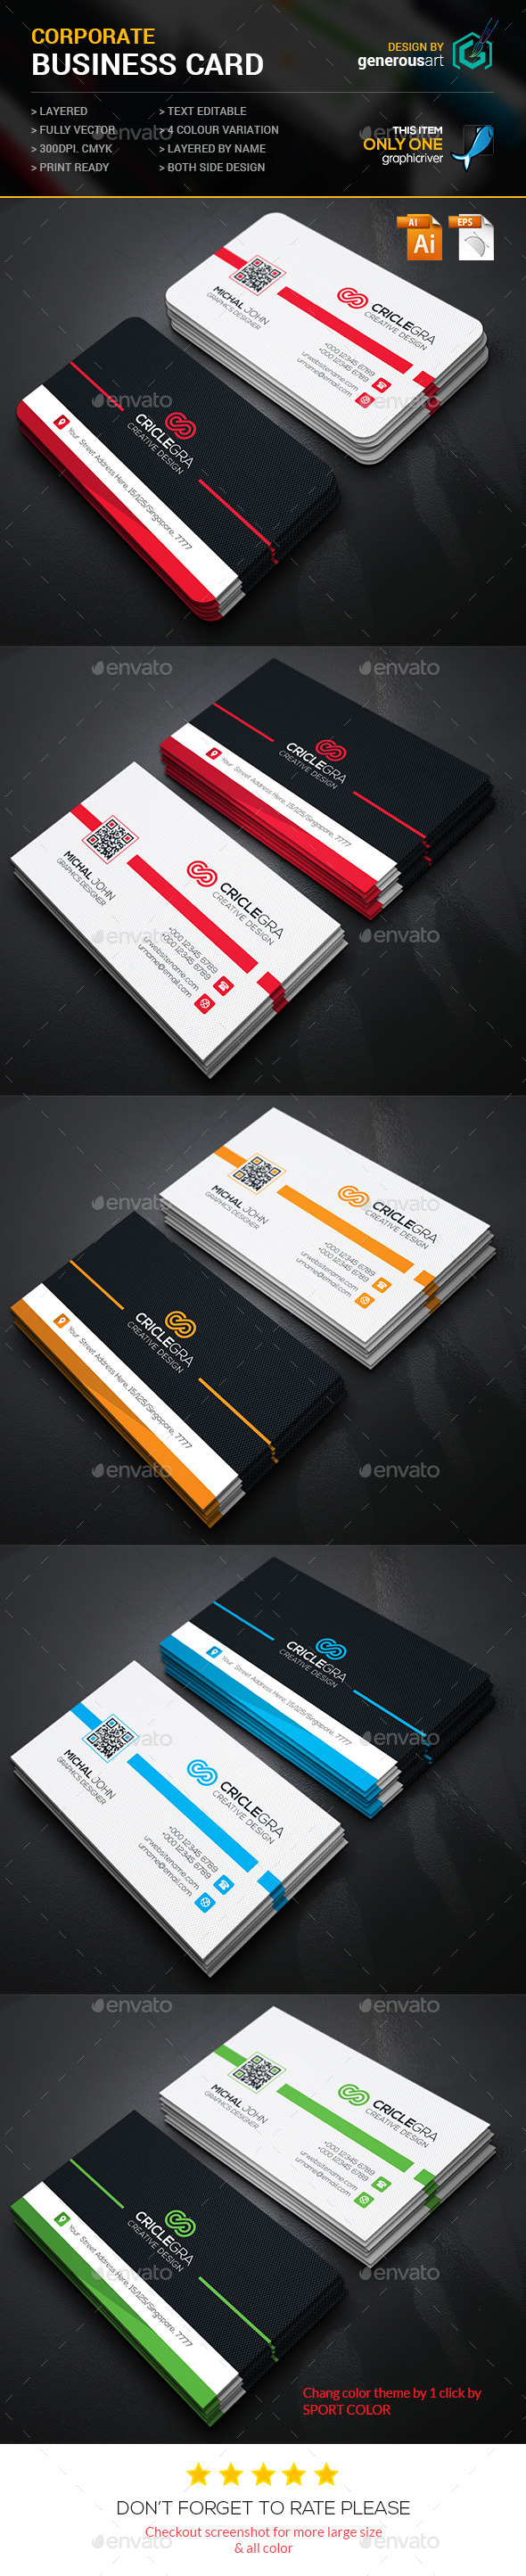 GraphicRiver Criclegra Corporate Business Card 11865180